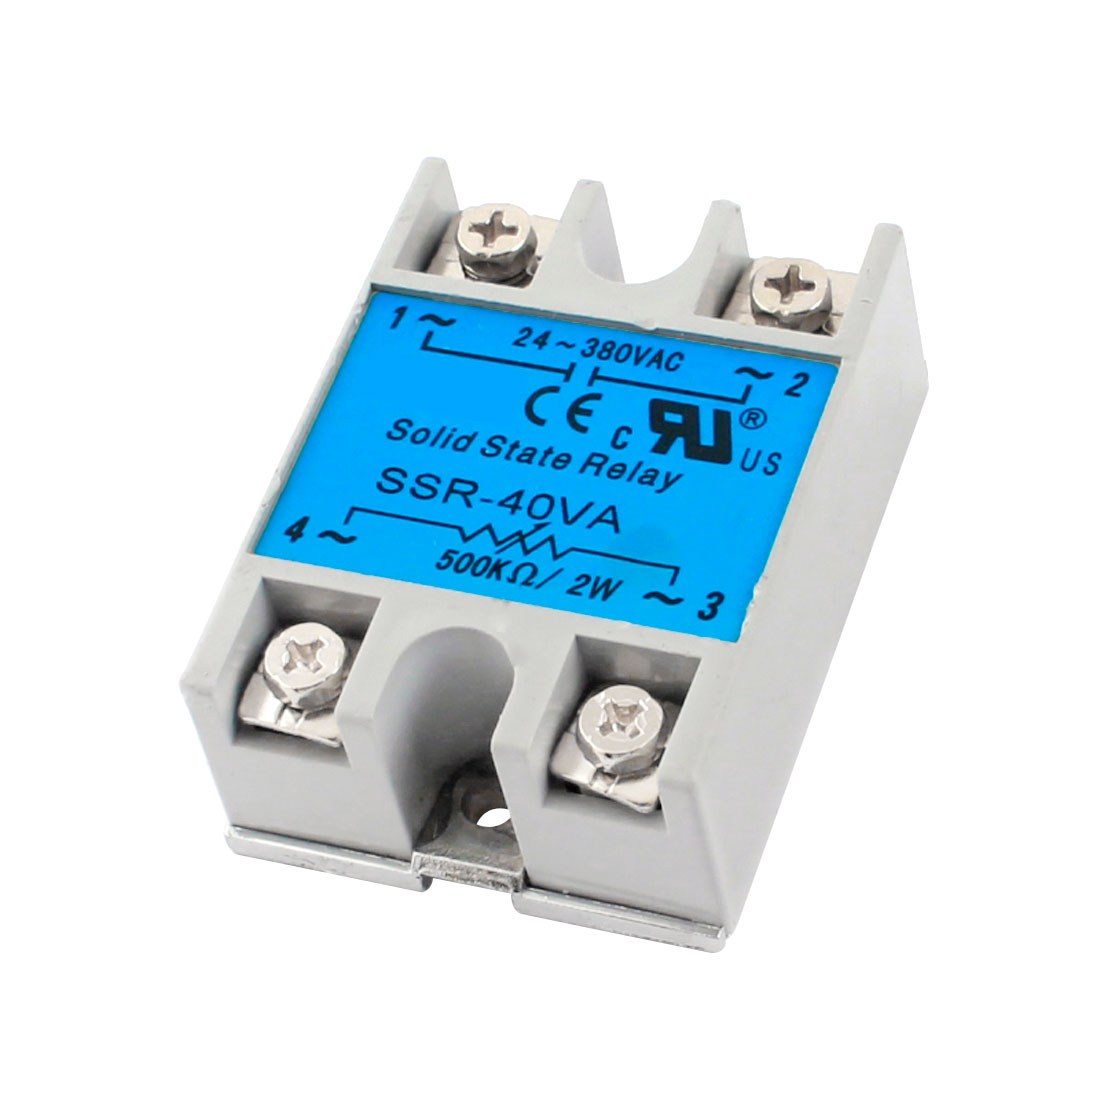 SSR-40VA AC24-380V 500K Ohm/2W 40VA Metal Base Single Phase Resistance Type Adjustable Solid Module State Relay